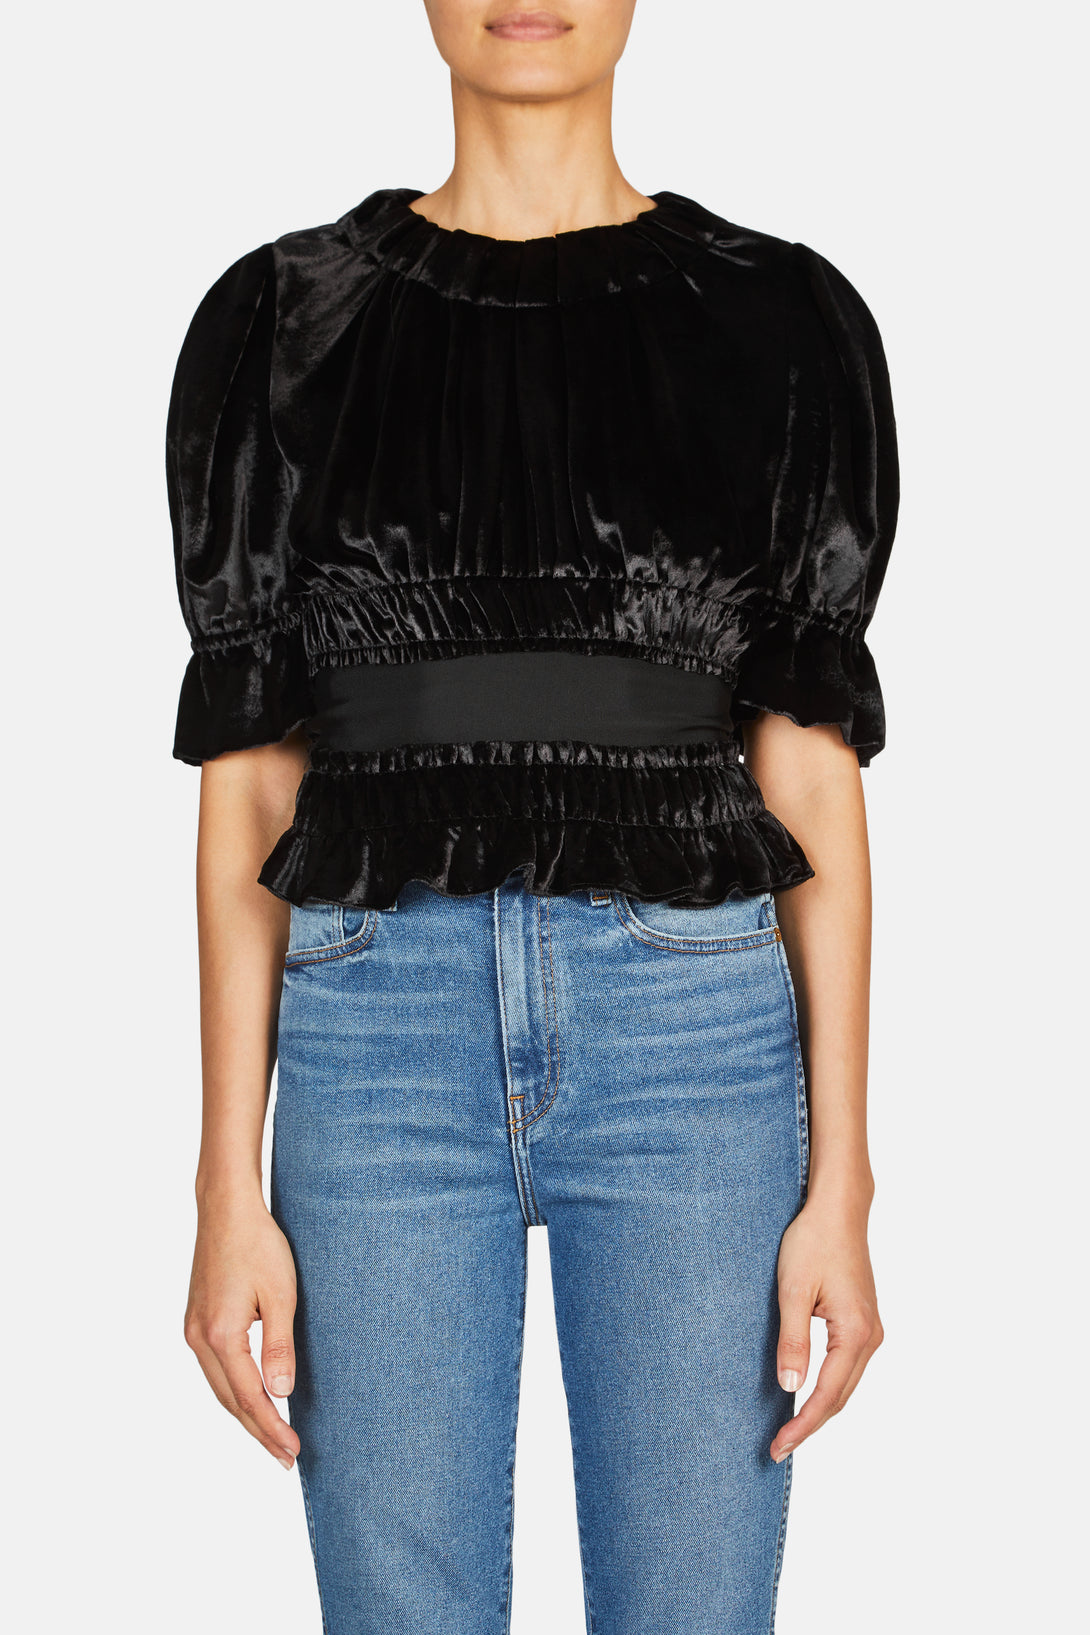 Tammy Pleated Top with Grosgrain Waistband - Black